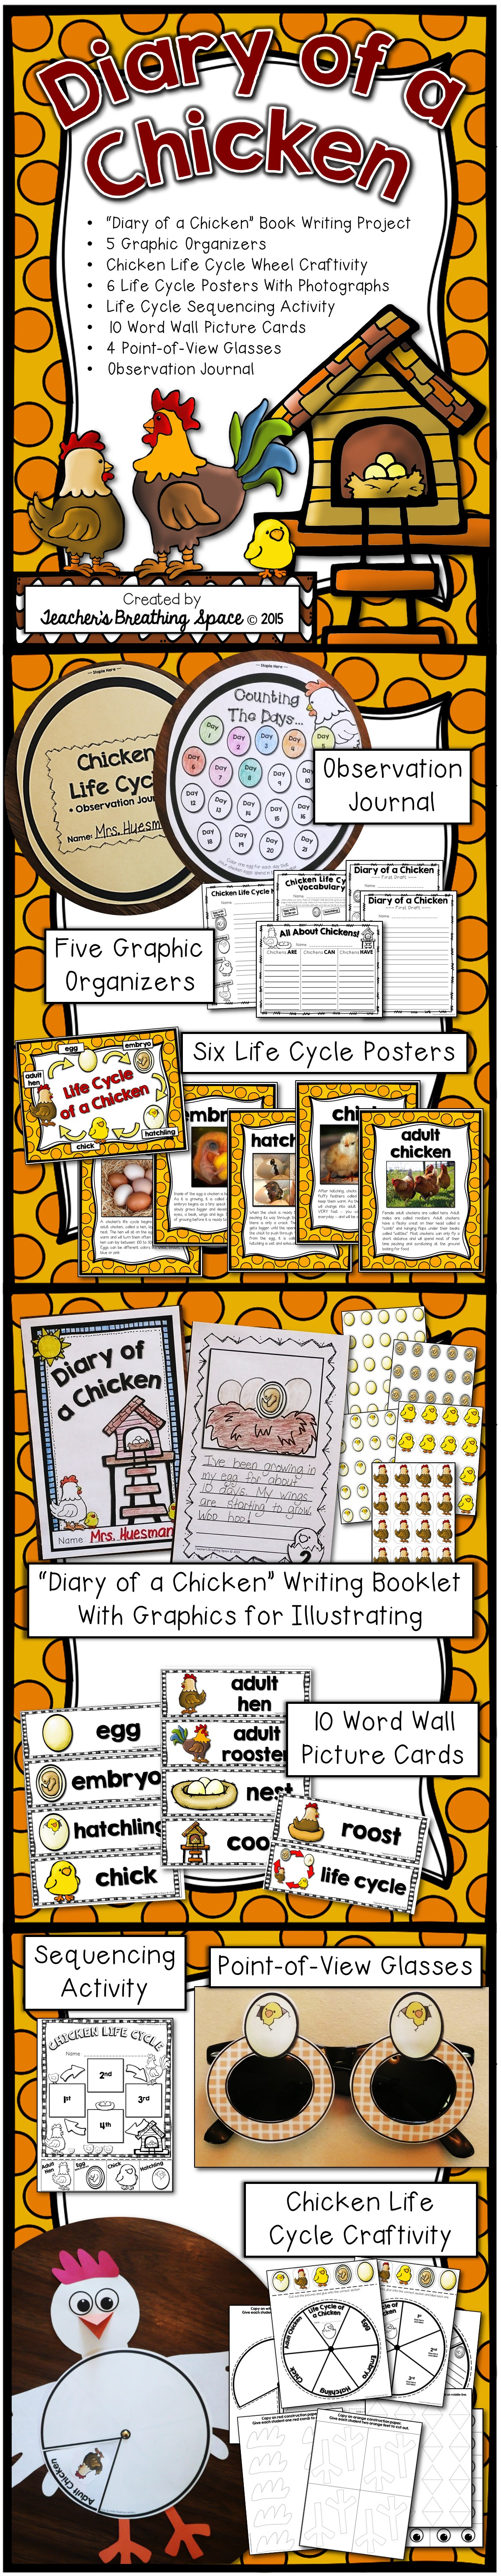 Chicken Life Cycle Diary Of A Chicken Writing Project Amp More